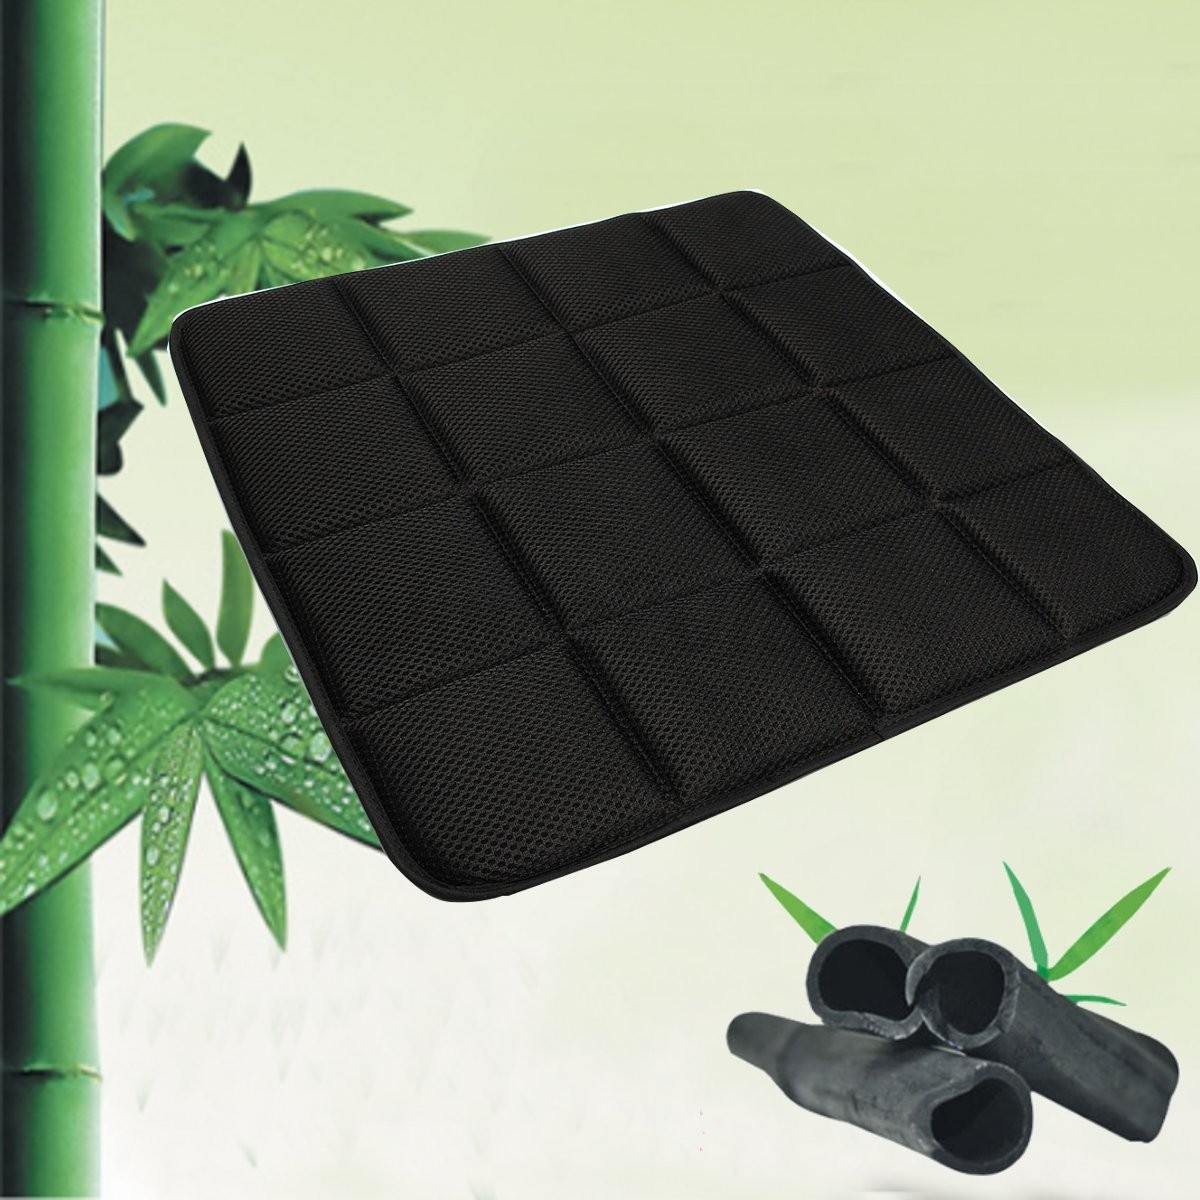 chair mat bamboo outdoor covers canada charcoal breathable seat cushion cover pad for